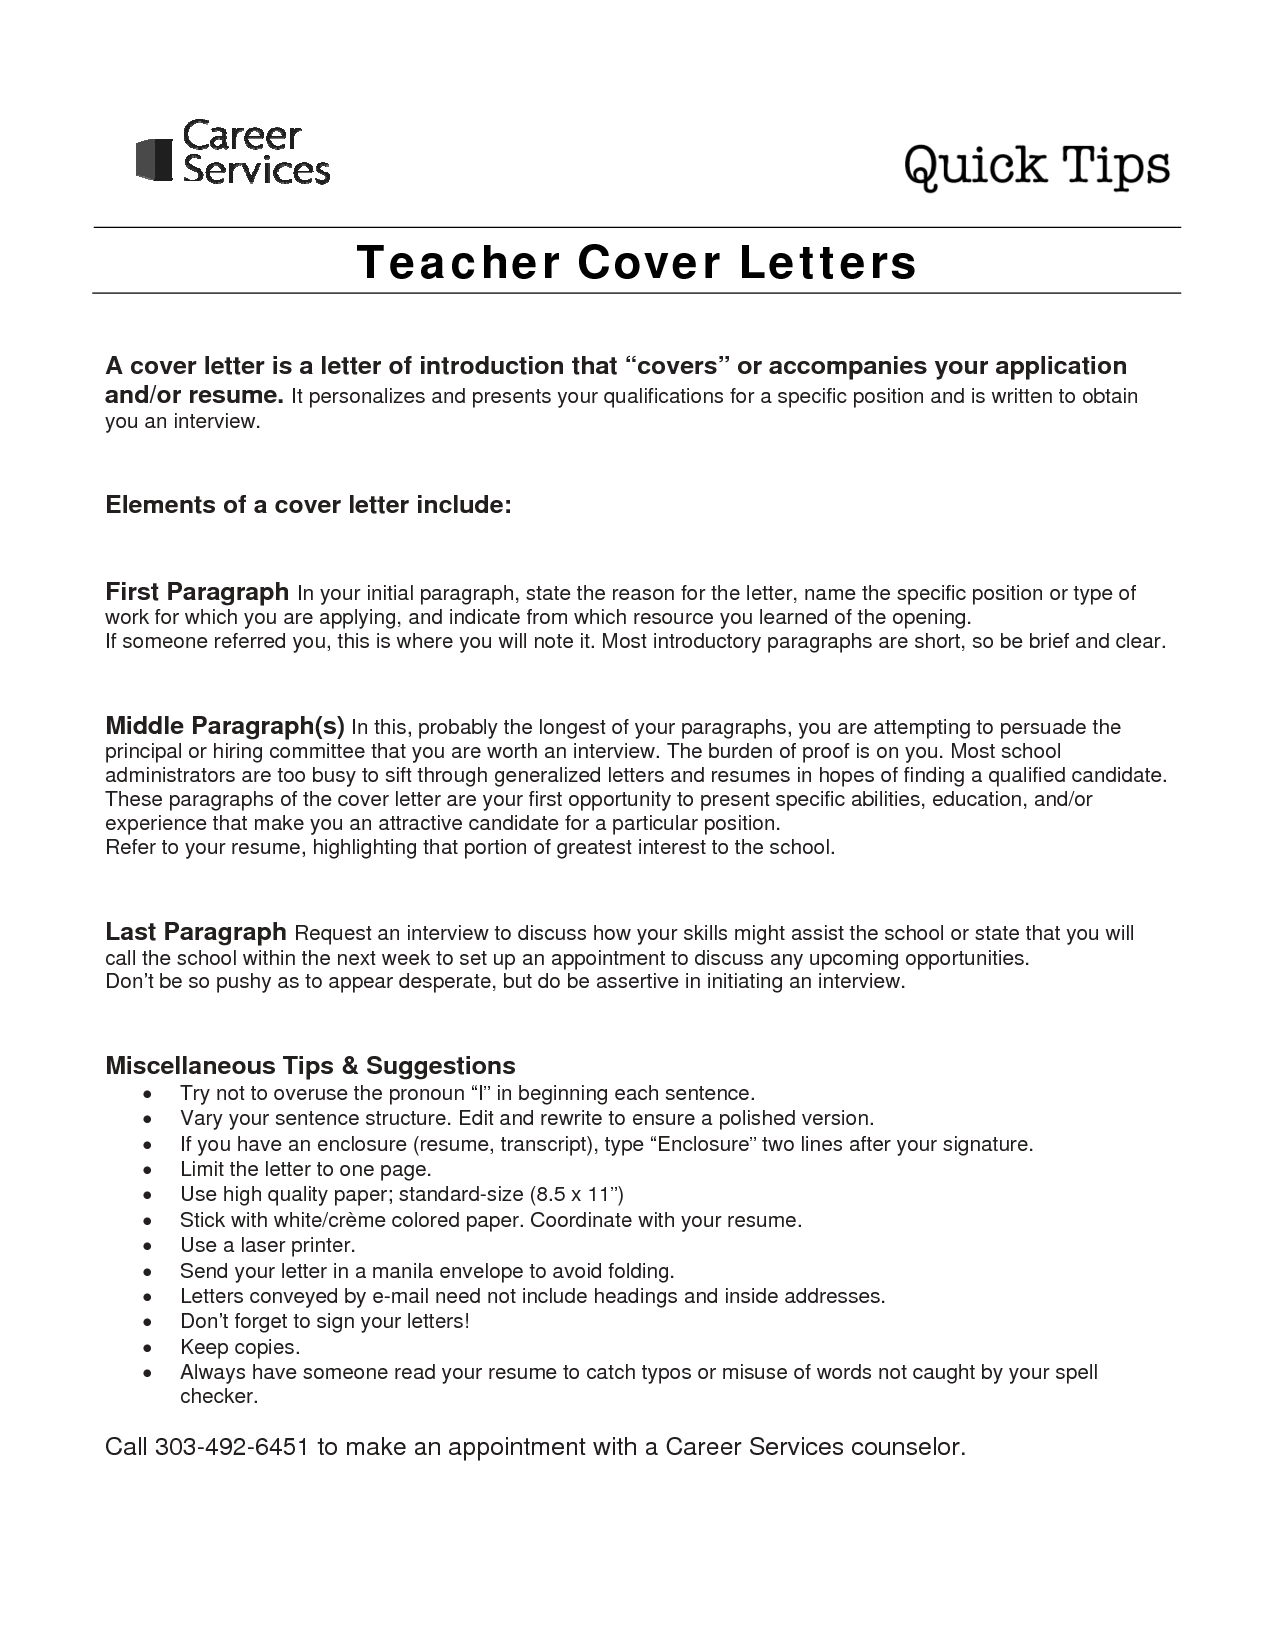 cover letter So you leaves impression resumesdesign – Teacher Resume Cover Letter